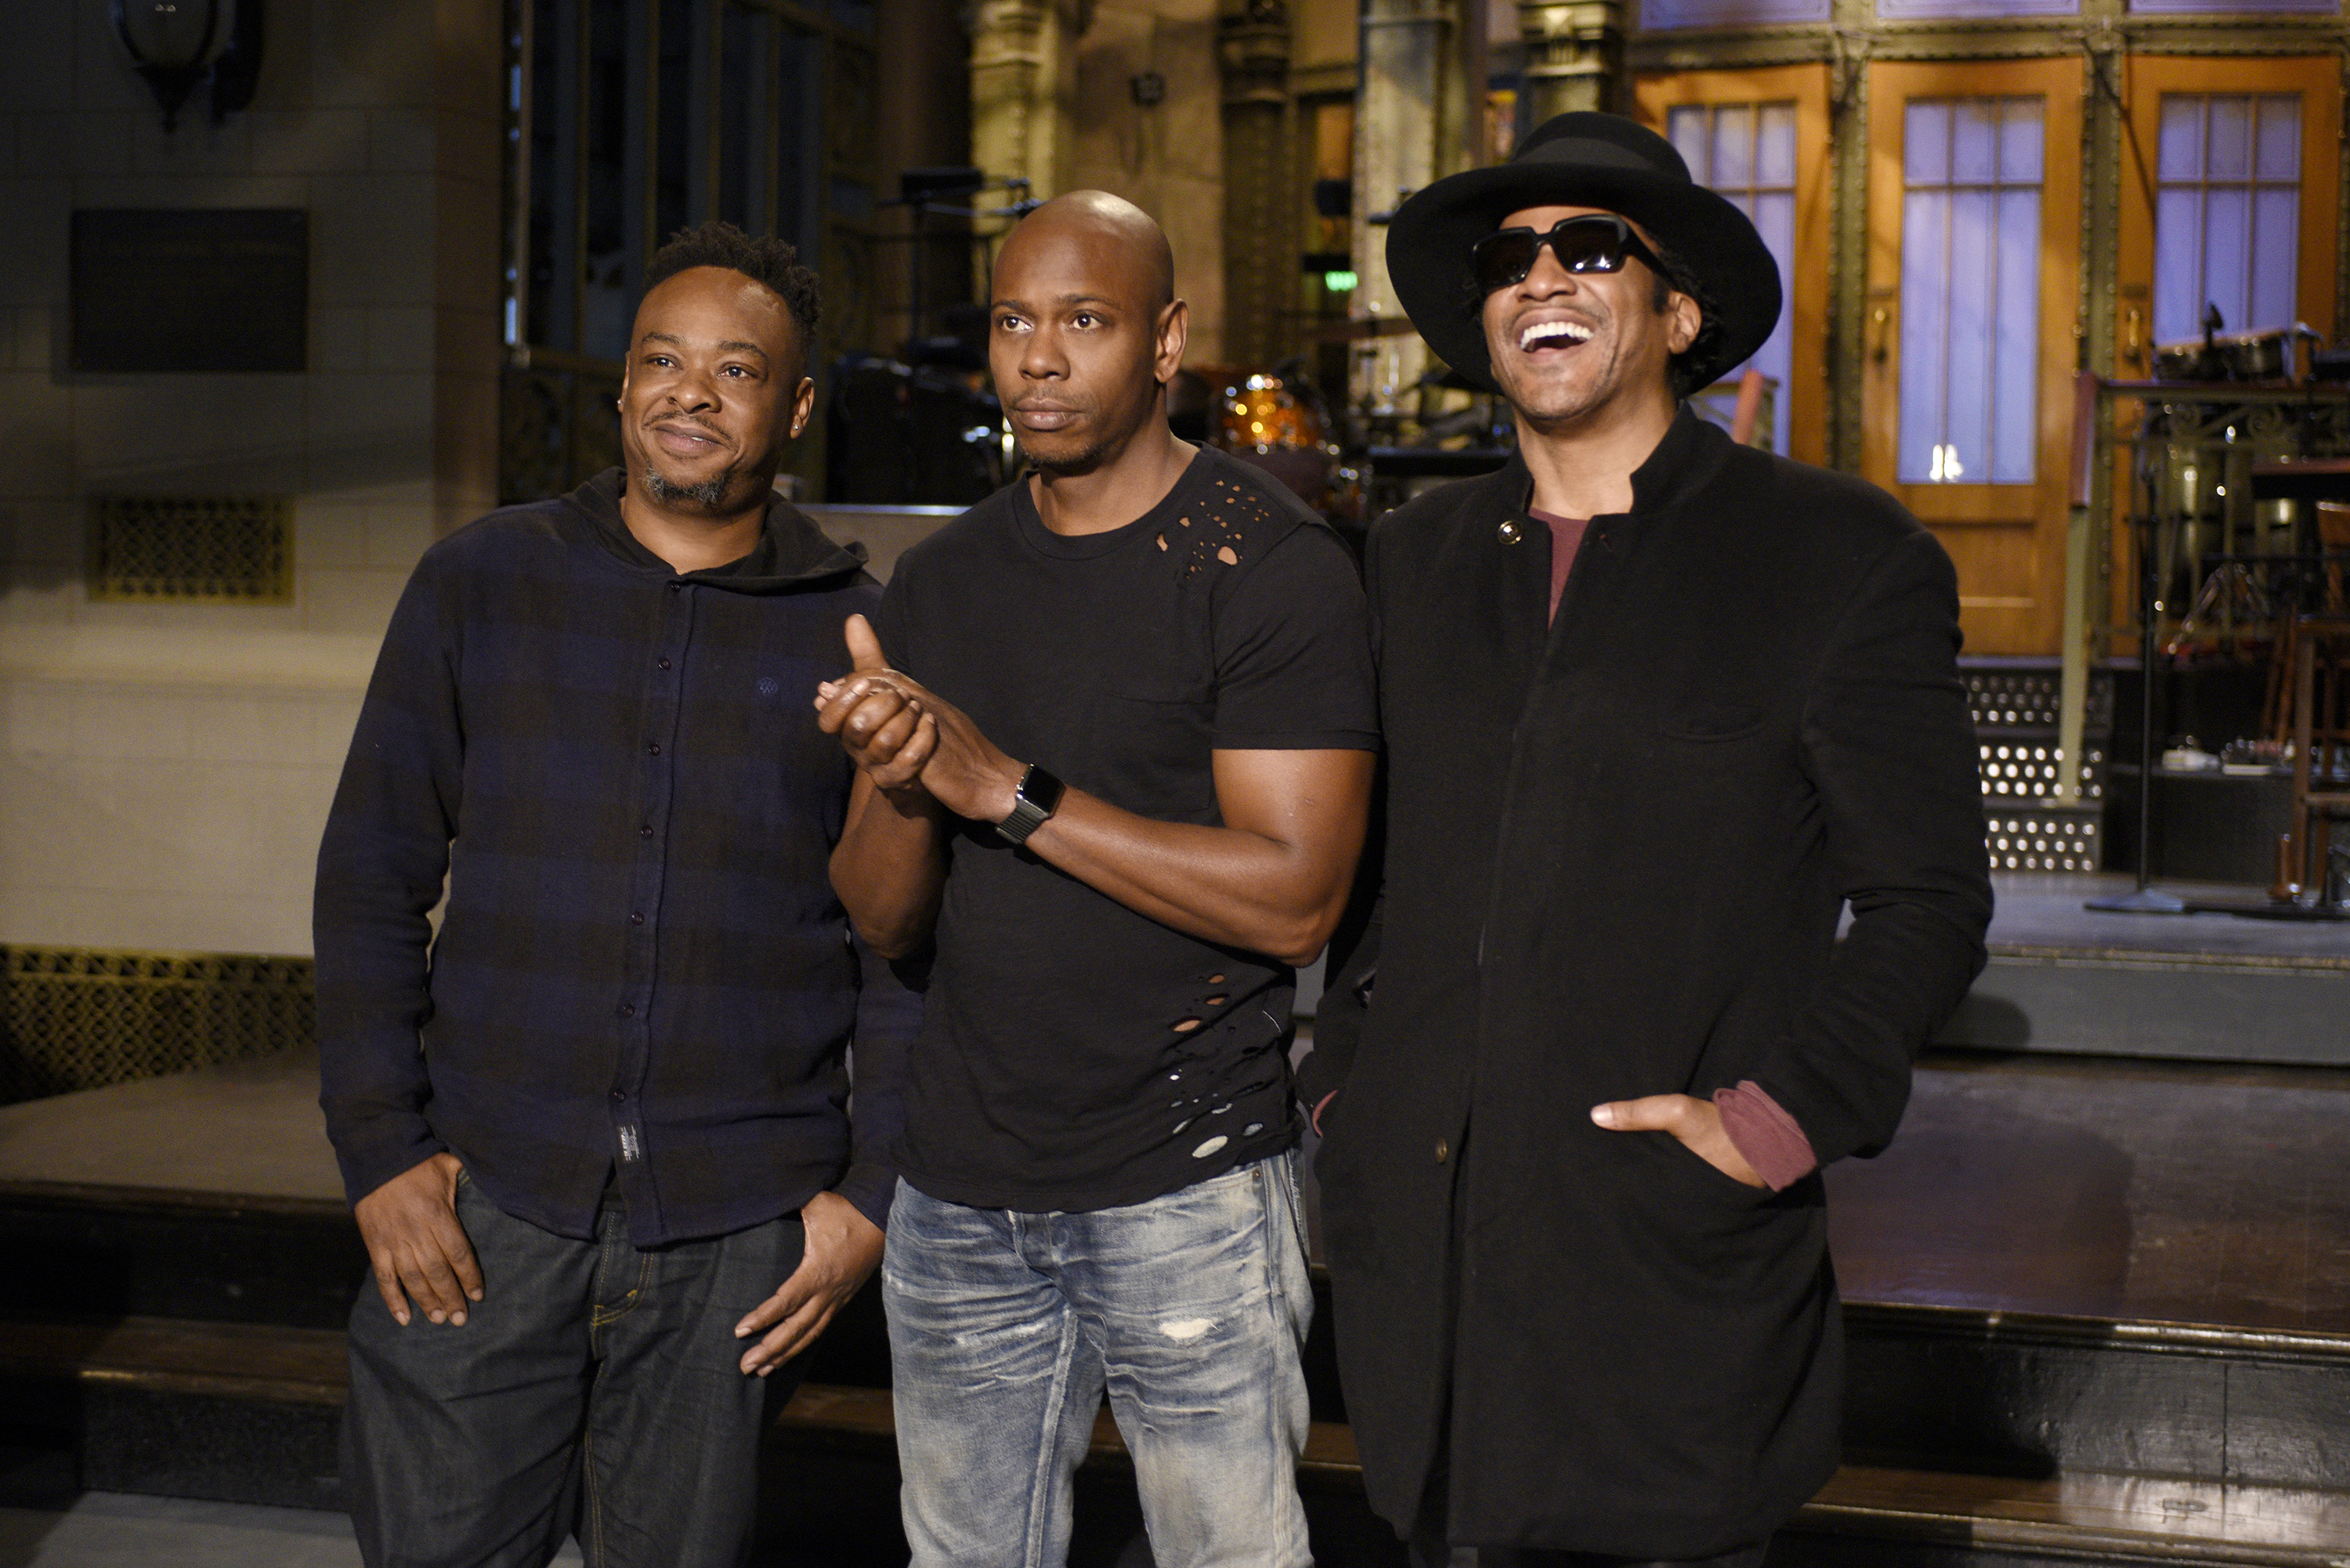 Pictured: (l-r) Jarobi White and Q-Tip of musical guest A Tribe Called Quest pose with host Dave Chappelle (center) on Nov. 10, 2016.